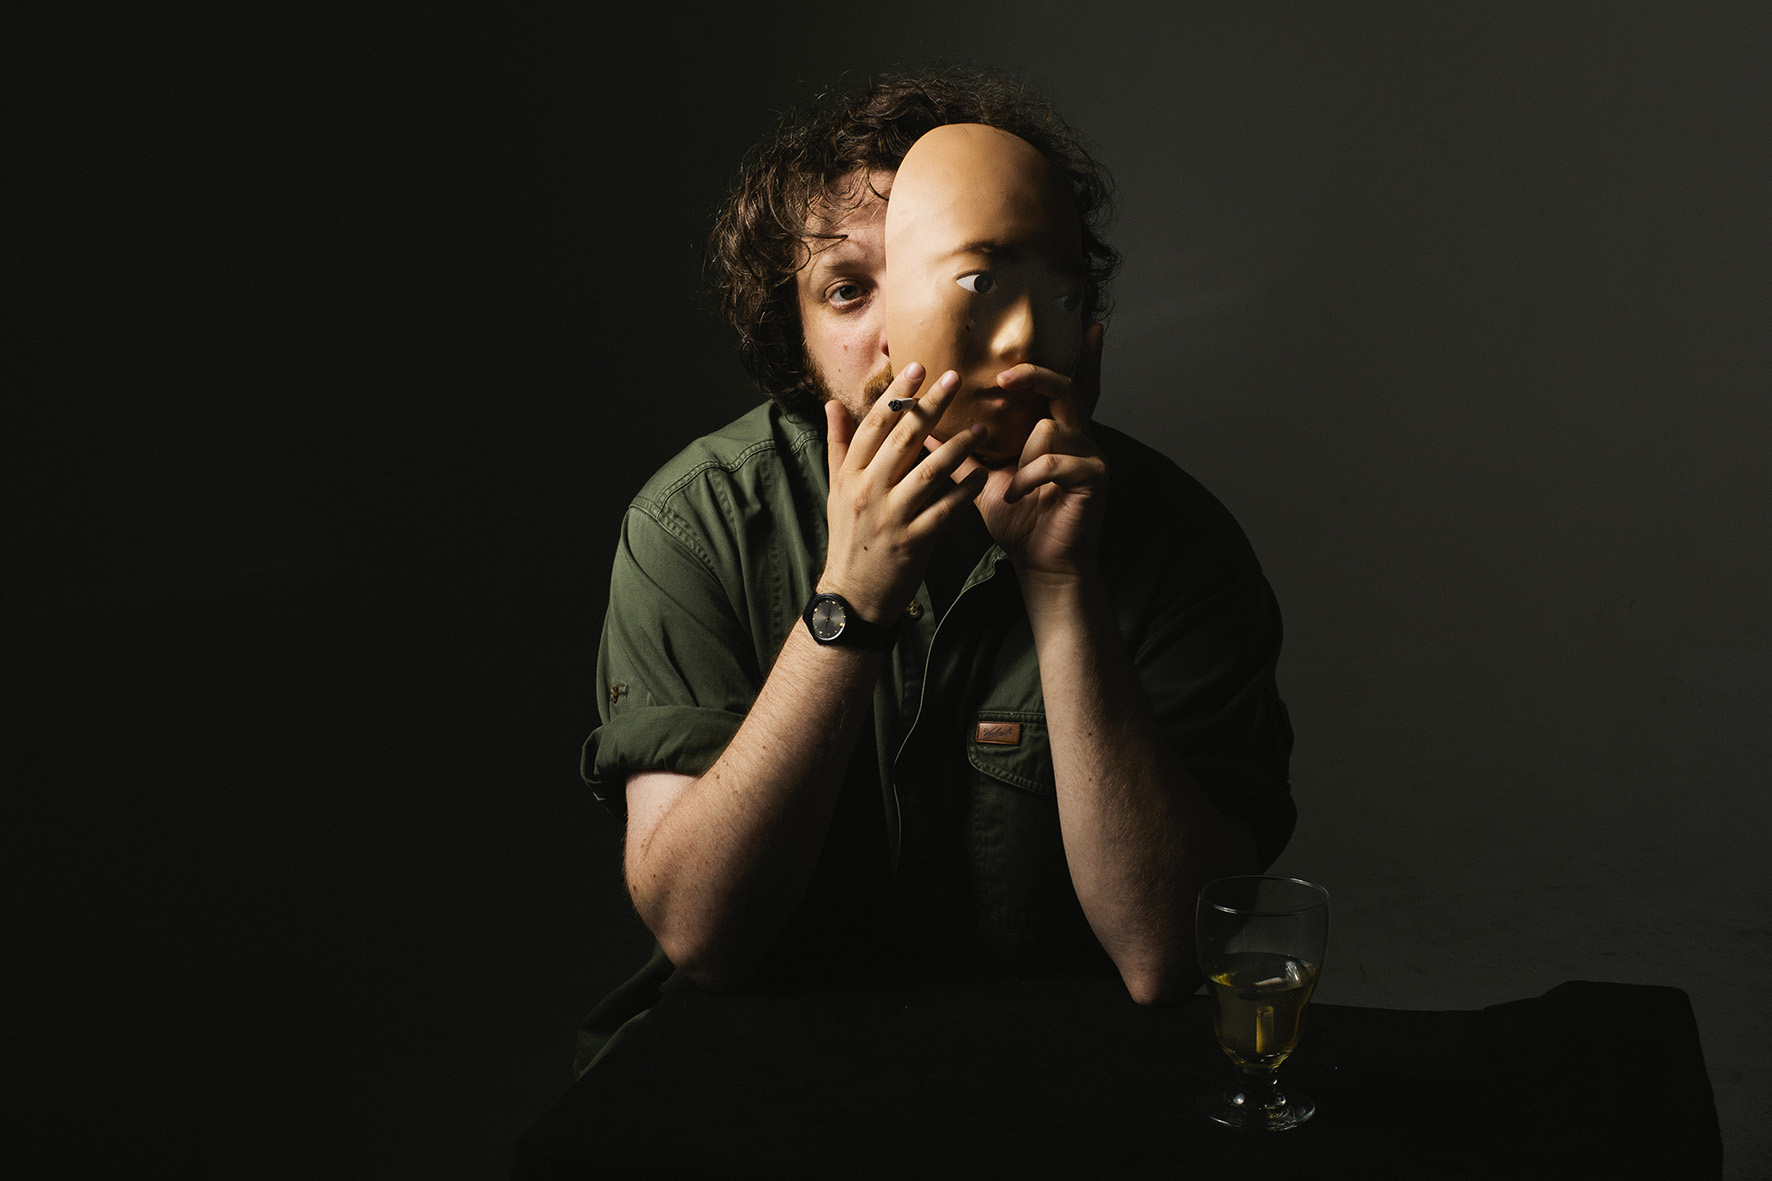 Oneohtrix Point Never at Lux Aeterna